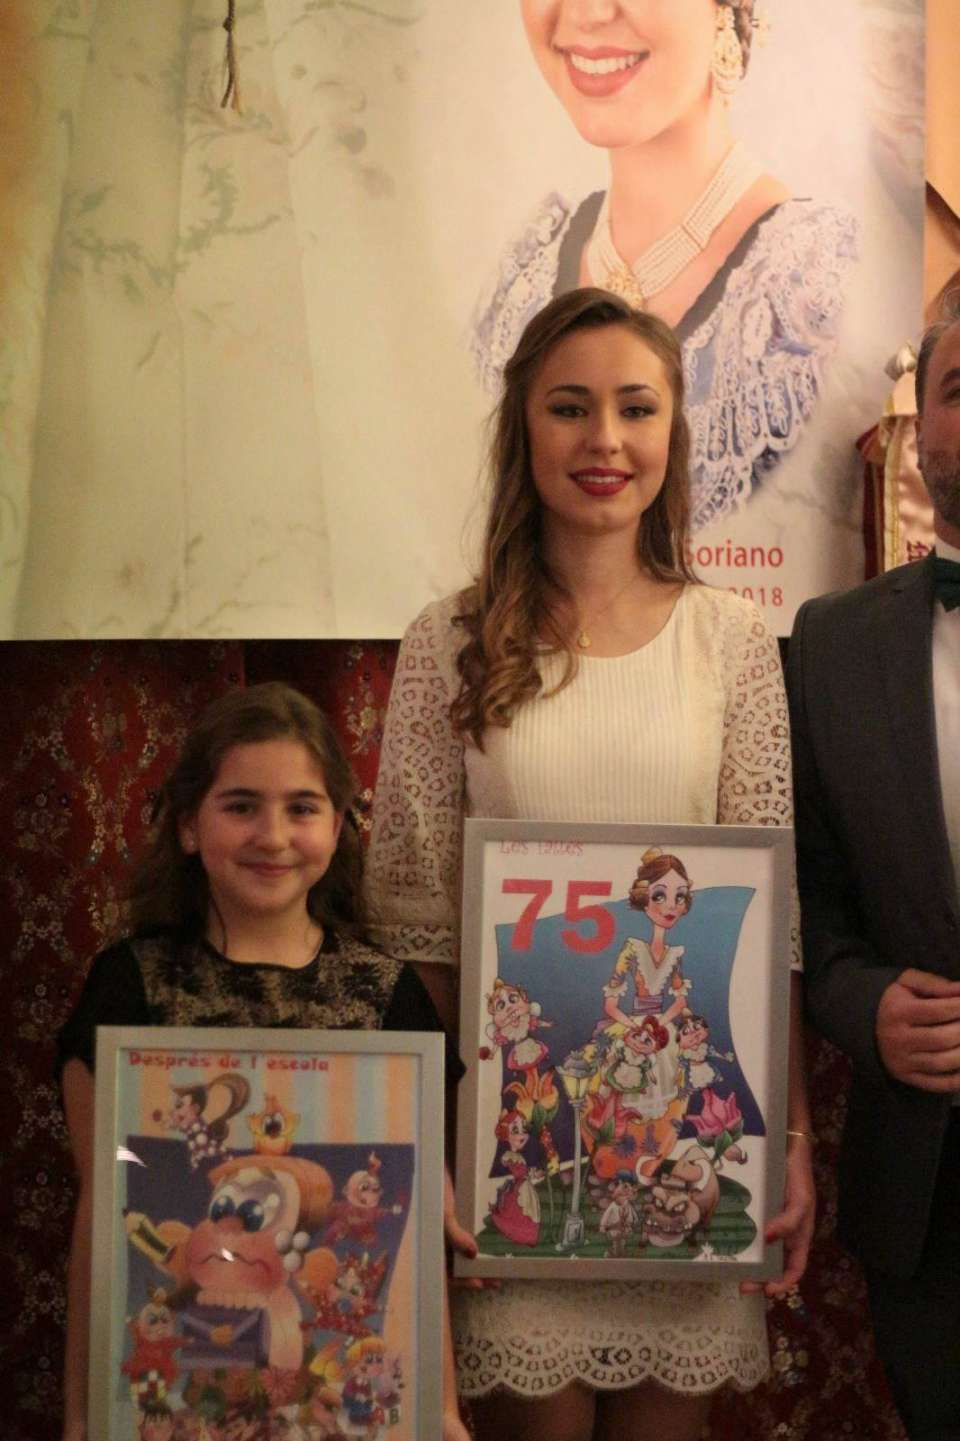 The Falla Quart-Turia proclaimed their Falleras Mayores for the Fallas 2018